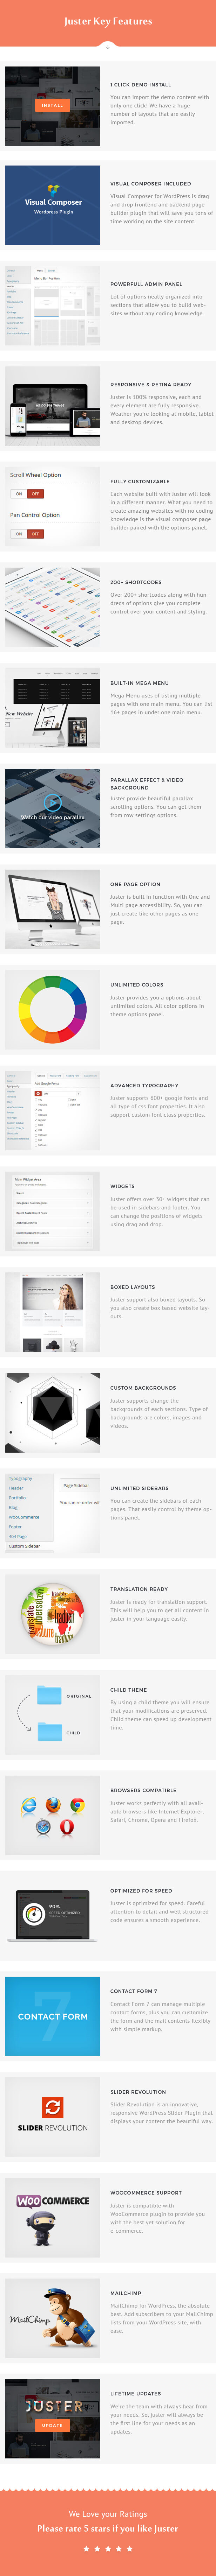 Juster - Multi-Purpose WordPress Theme - 13